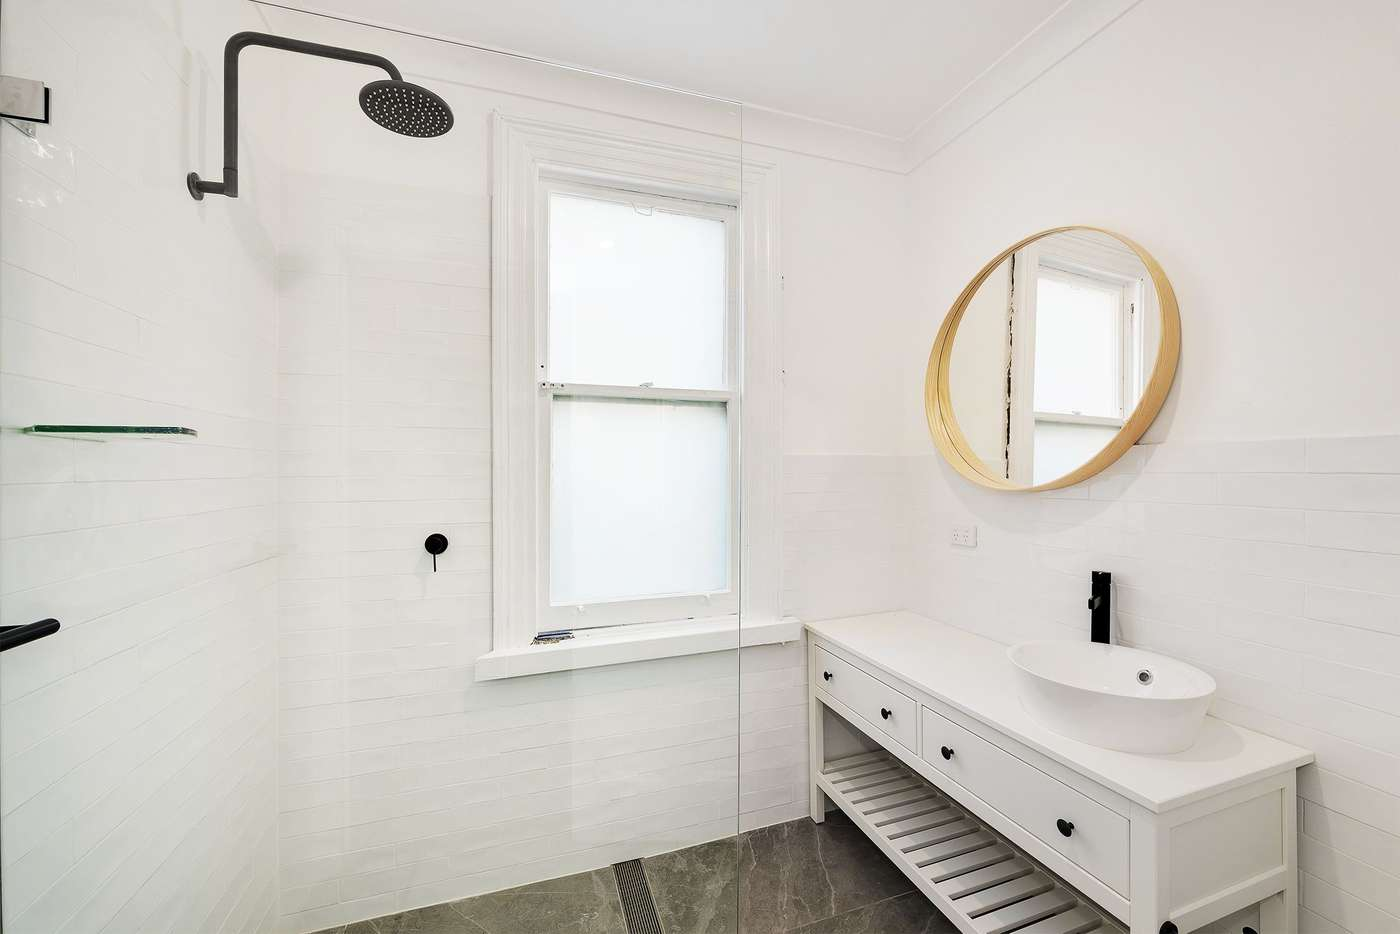 Sixth view of Homely apartment listing, 5/9 Davidson Parade, Cremorne NSW 2090